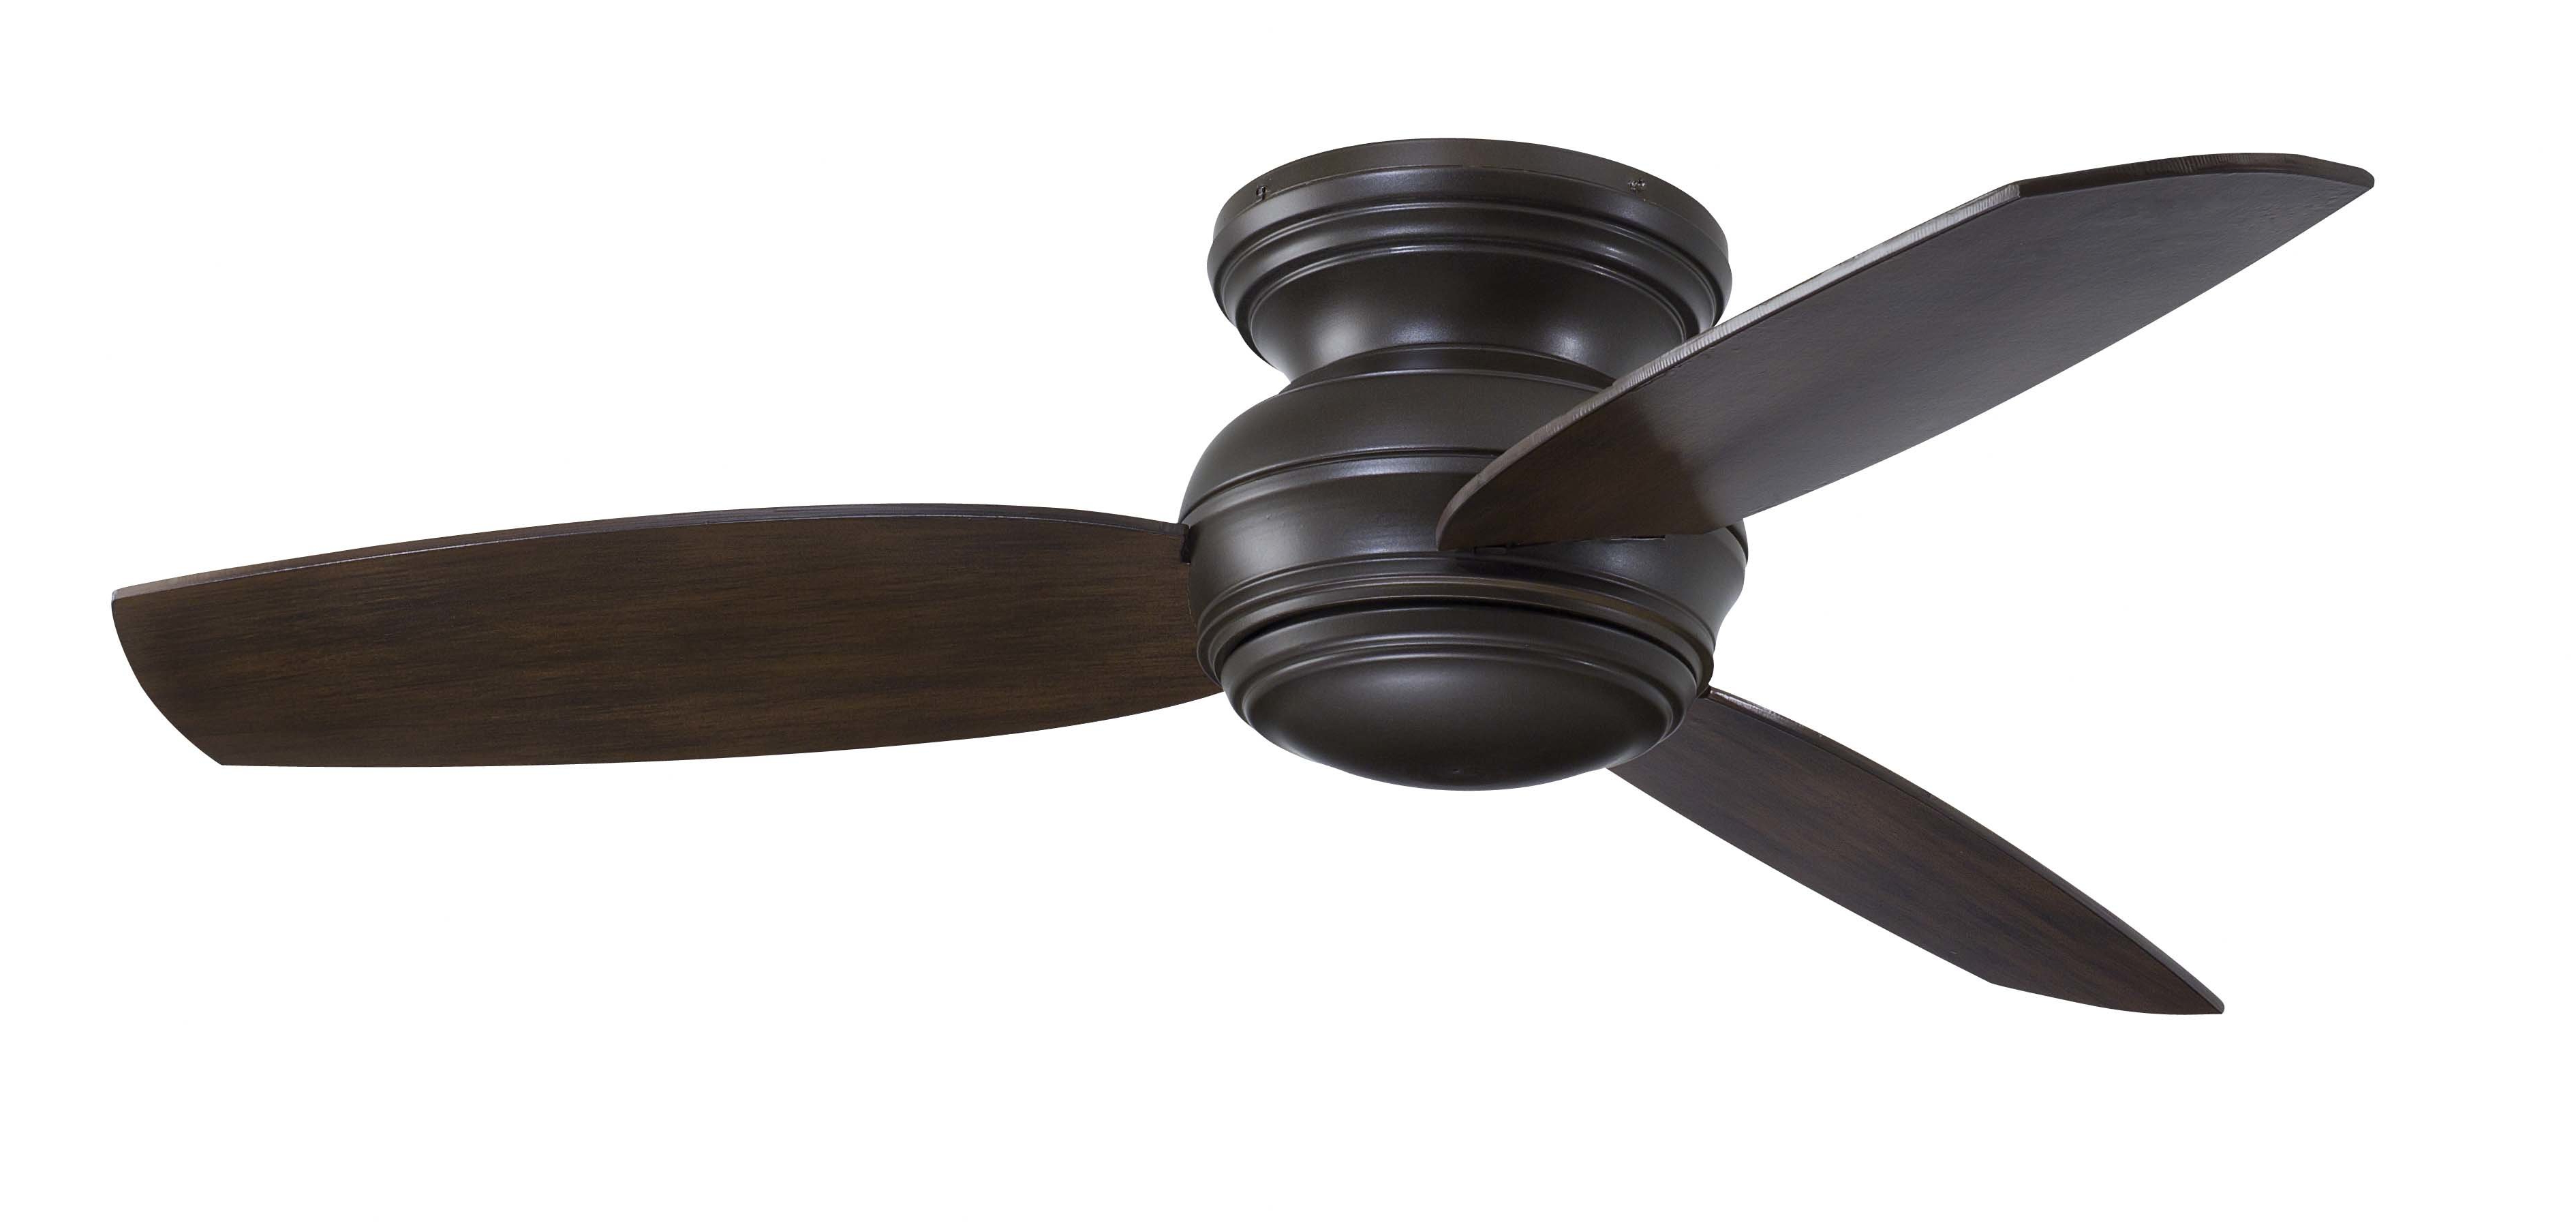 """Latest Concept Ii 3 Blade Led Ceiling Fans With Remote With Regard To 44"""" Concept Ii 3 Blade Outdoor Ceiling Fan, Light Kit Included (View 12 of 20)"""